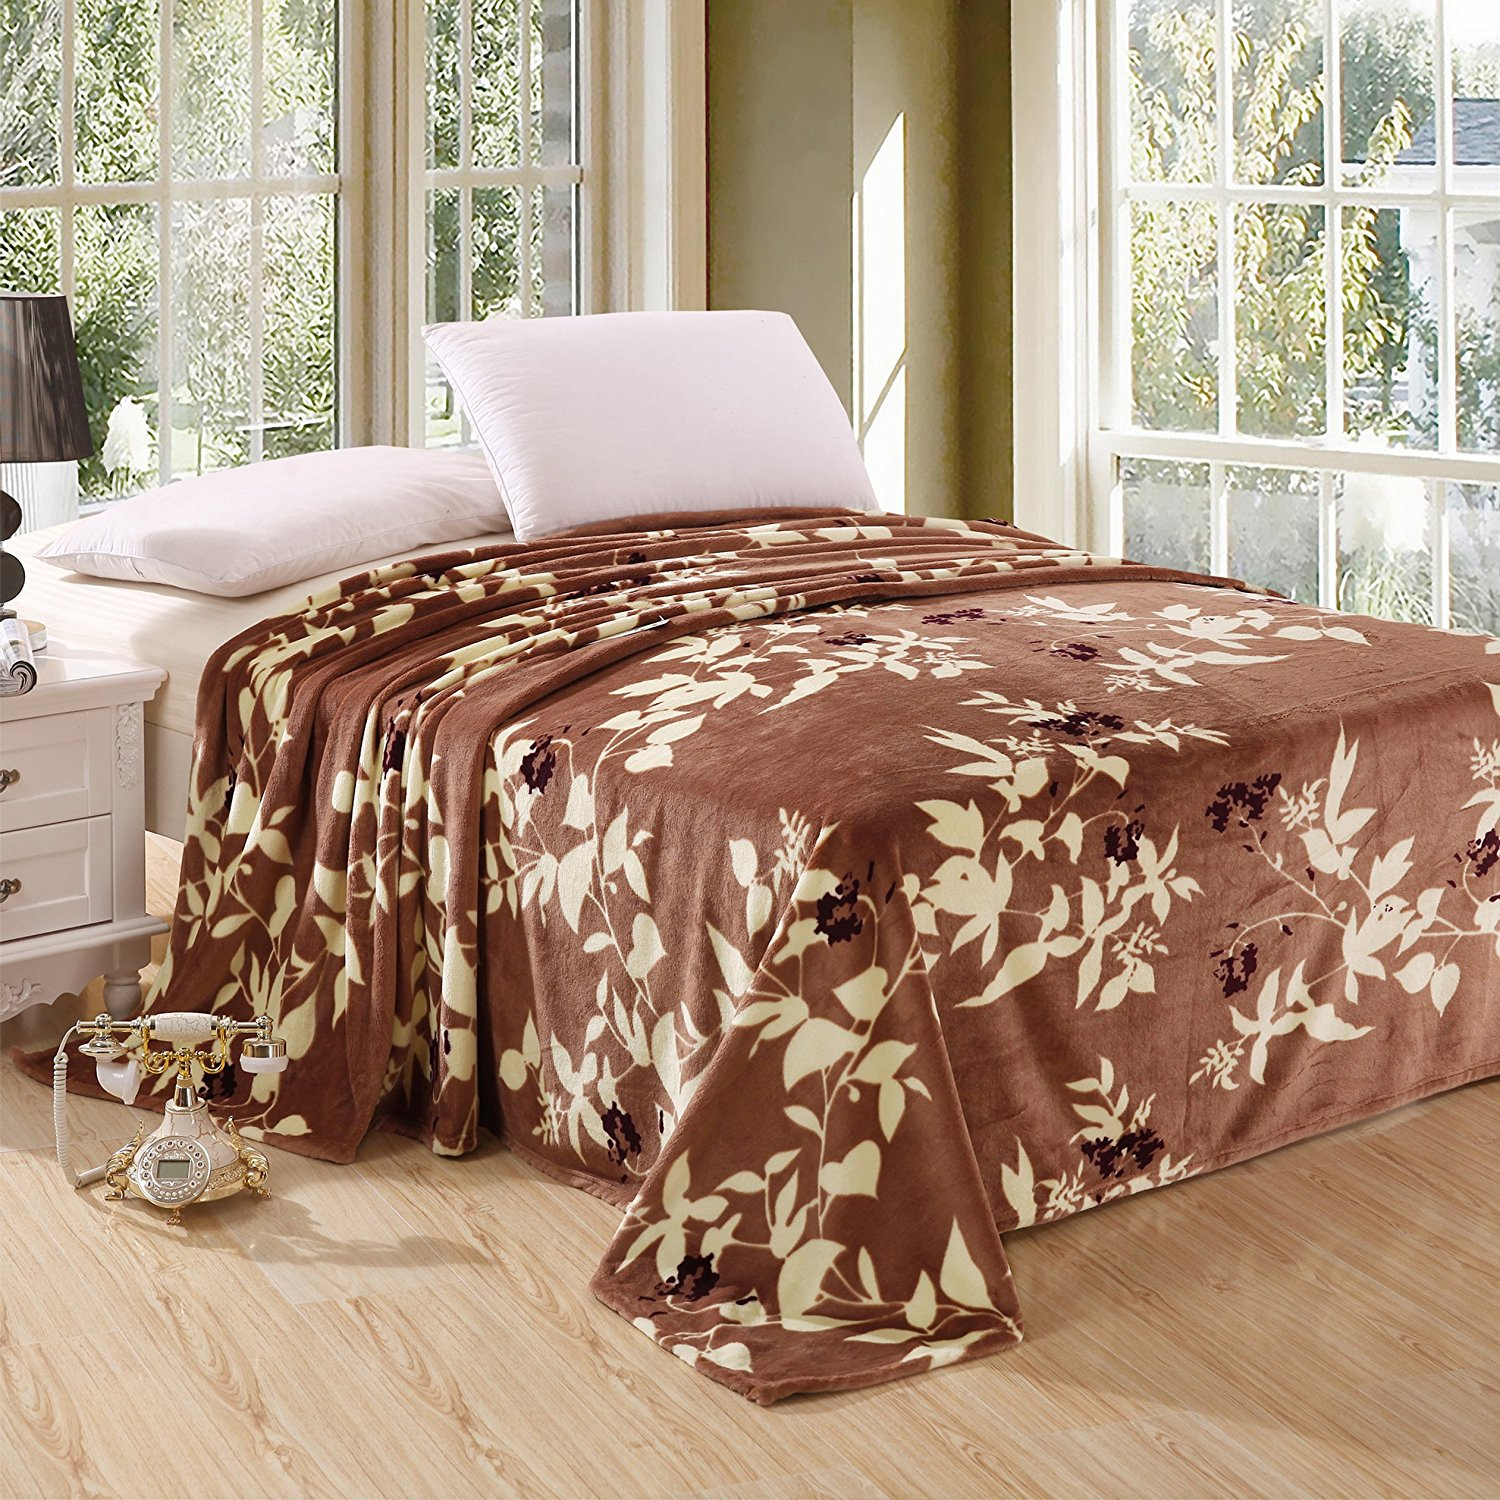 "MAPLE LEAVES Oversized Printed Luxurious Super Soft Plush Flannel Blanket, Silky Throw in Queen Size 79""x87"""